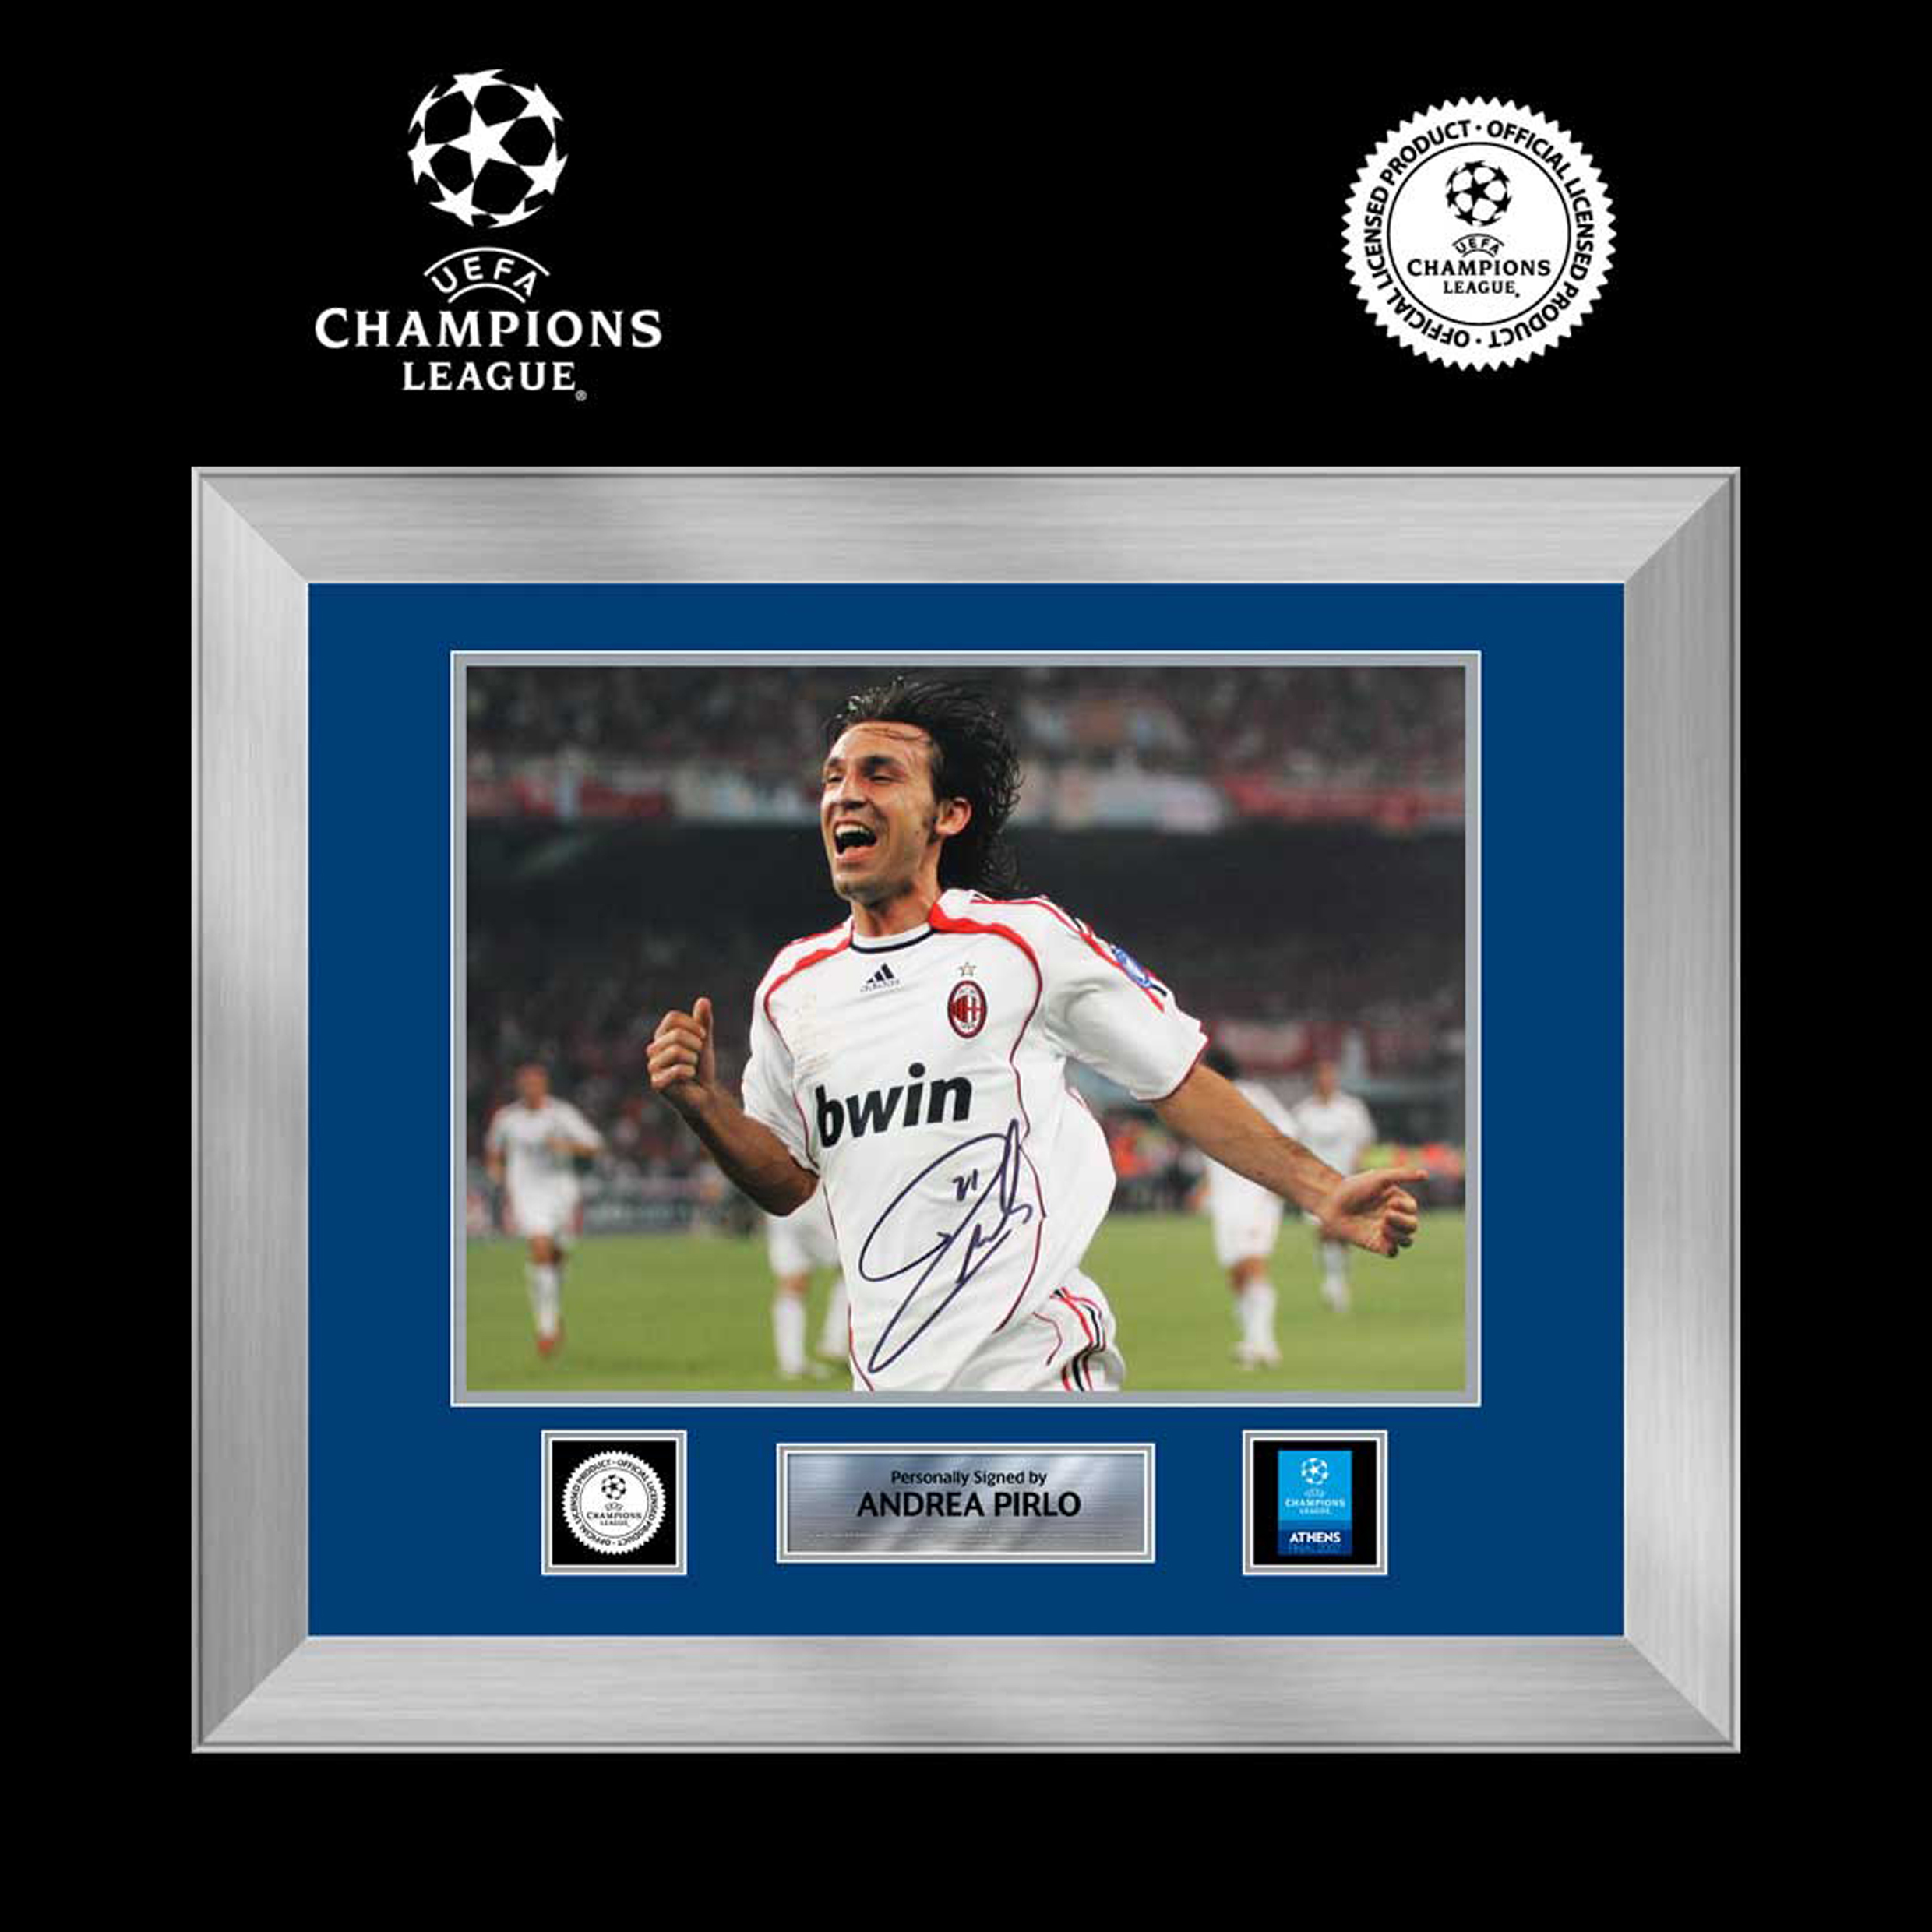 UEFA Champions League Andrea Pirlo Signed and Framed AC Milan Photo: 2007 Final